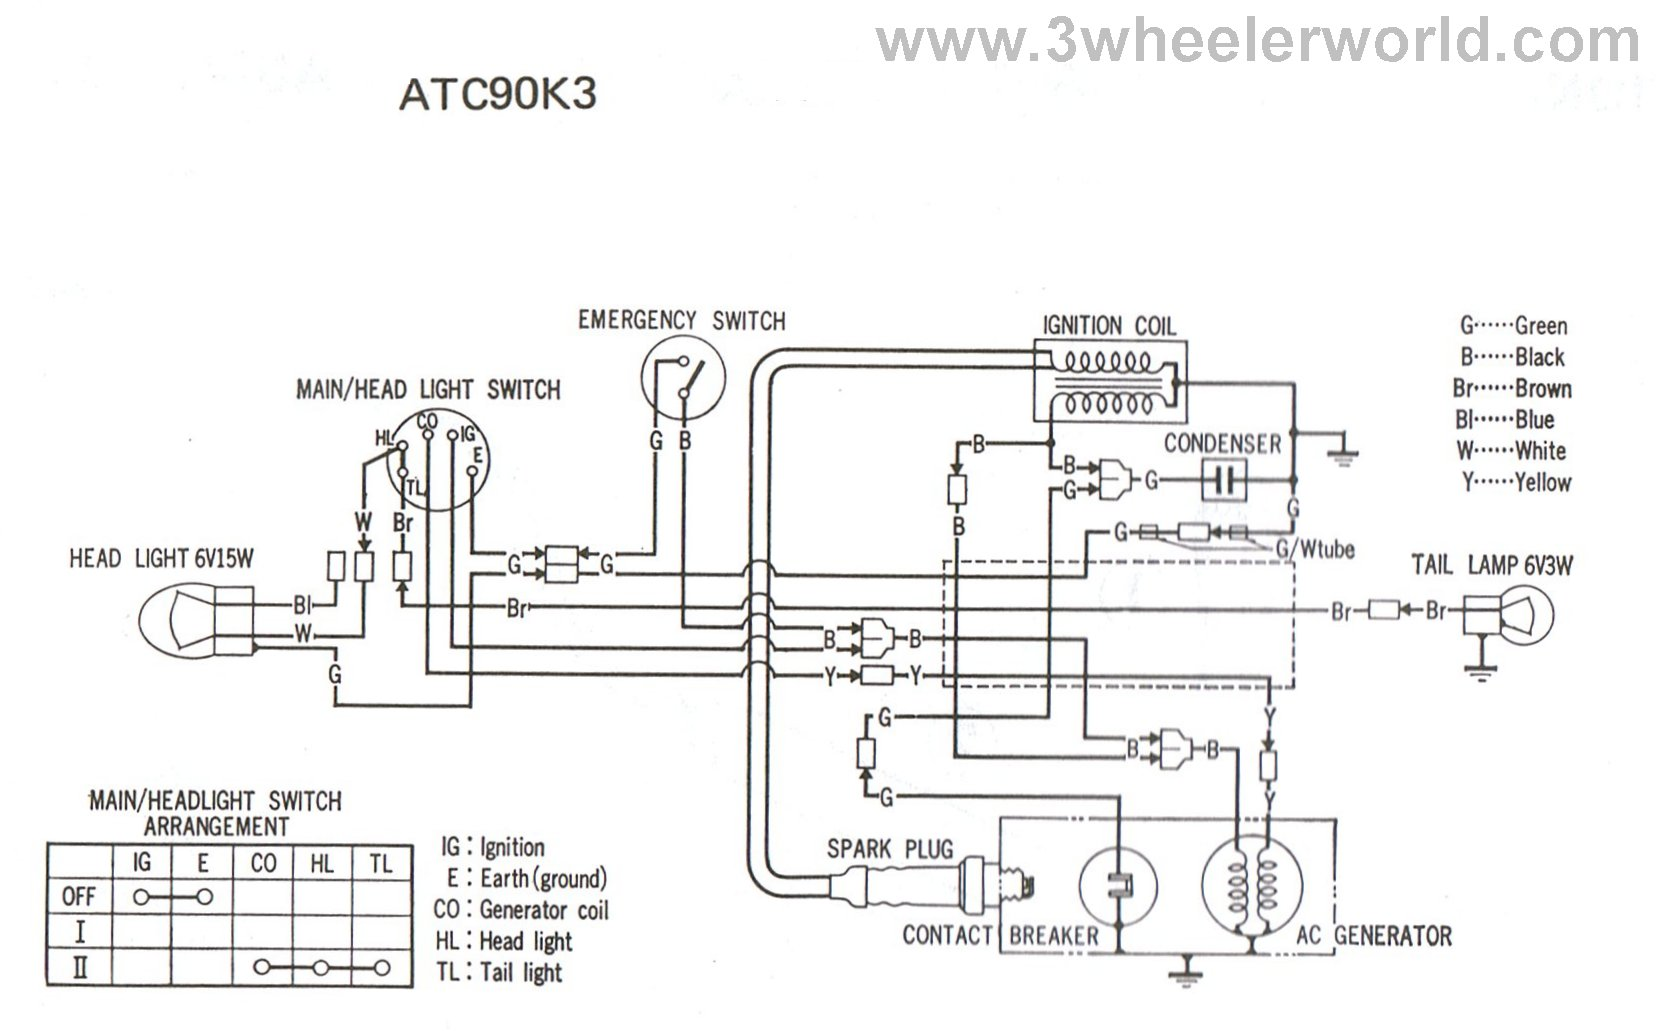 ATC90K3HM wiring diagram polaris xplorer 300 the wiring diagram 2003 polaris predator 90 wiring diagram at readyjetset.co